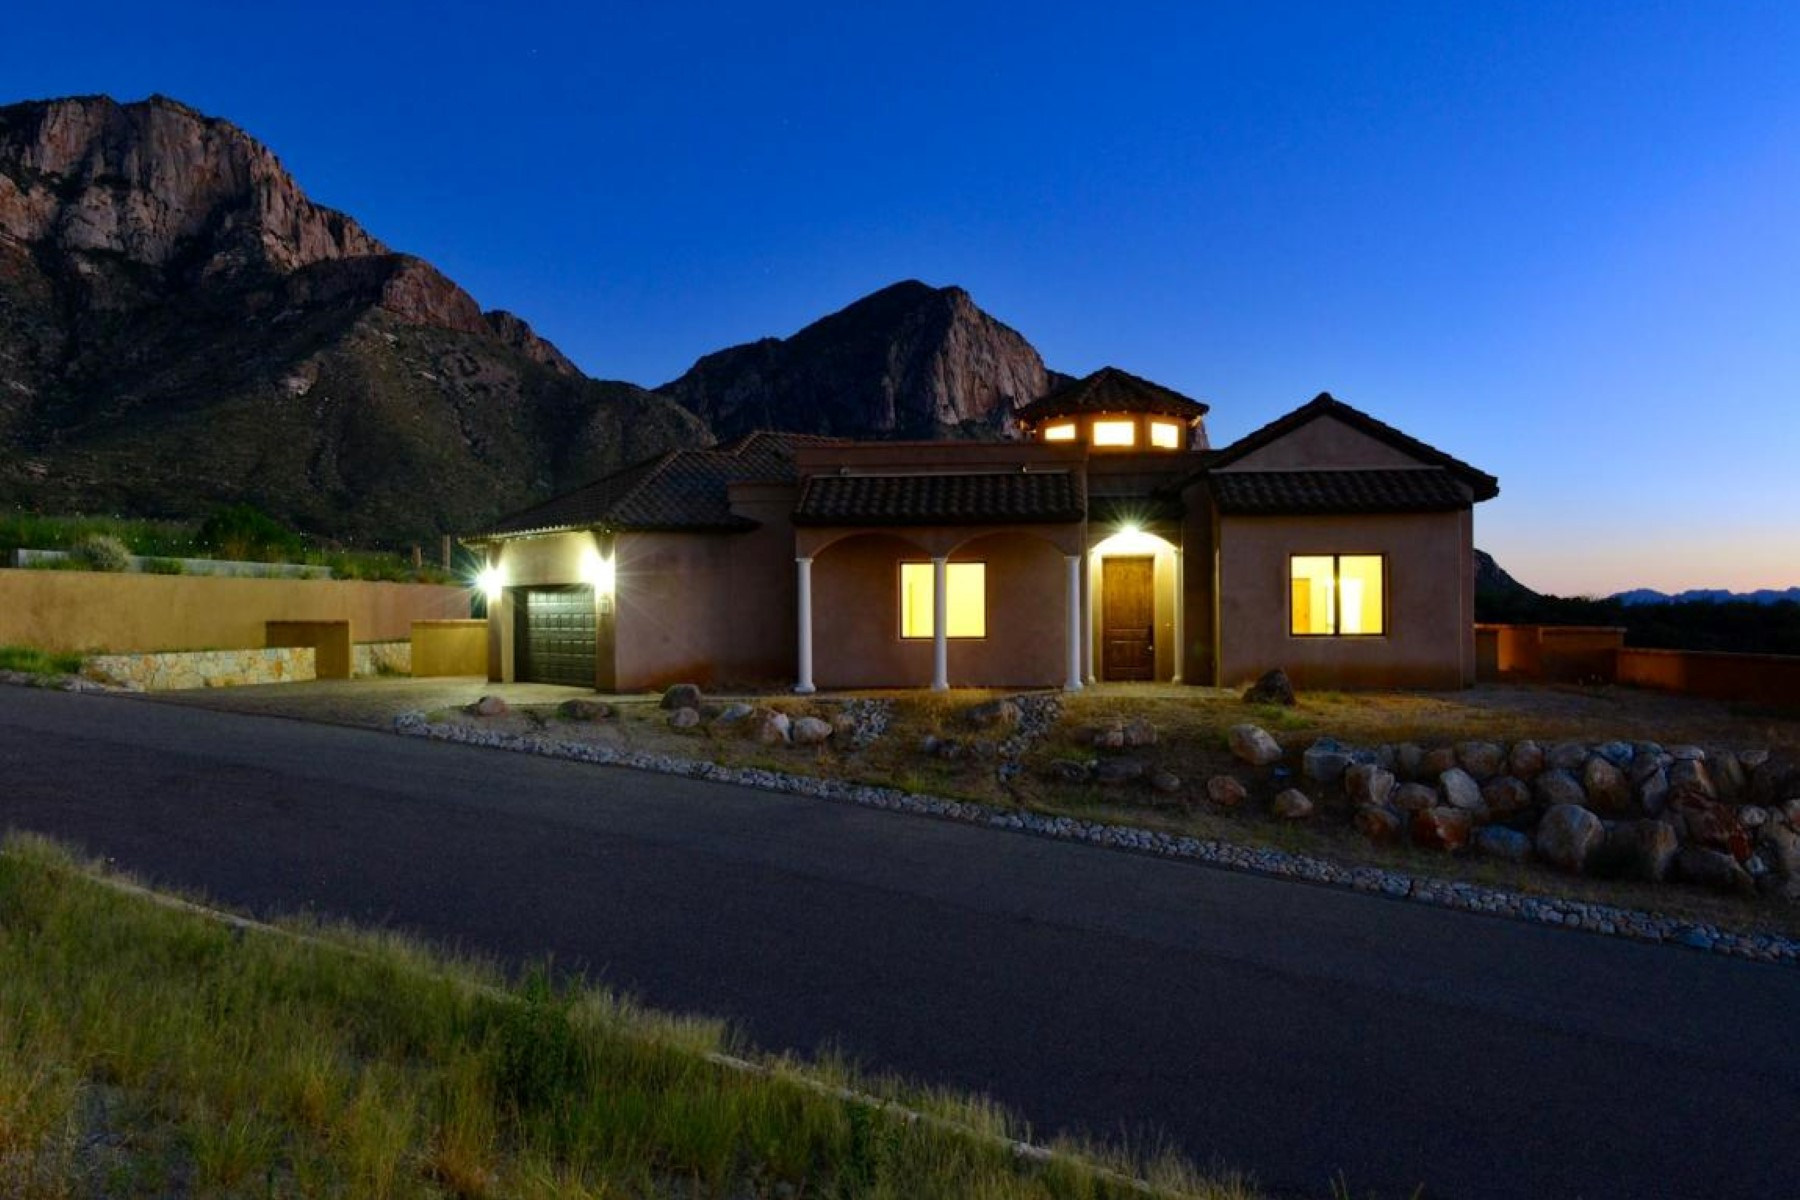 Property For Sale at New Construction With Breathtaking Unobstructed Catalina Mountain Views